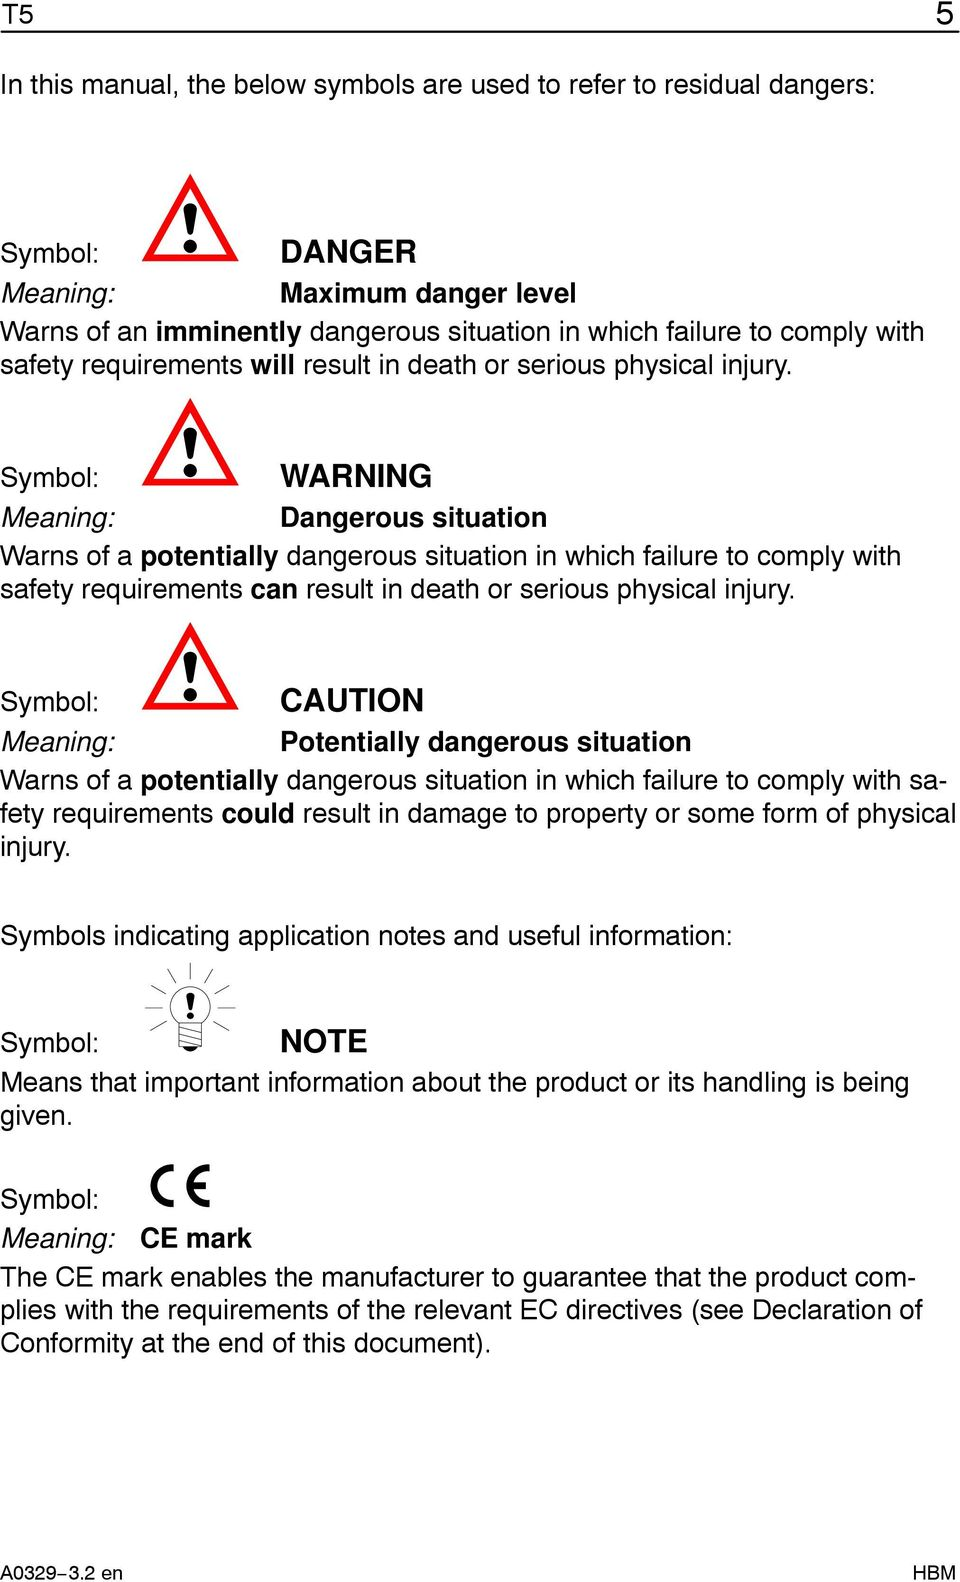 Symbol: WARNING Meaning: Dangerous situation Warns of a potentially dangerous situation in which failure to comply with safety requirements can result in death or serious physical injury.